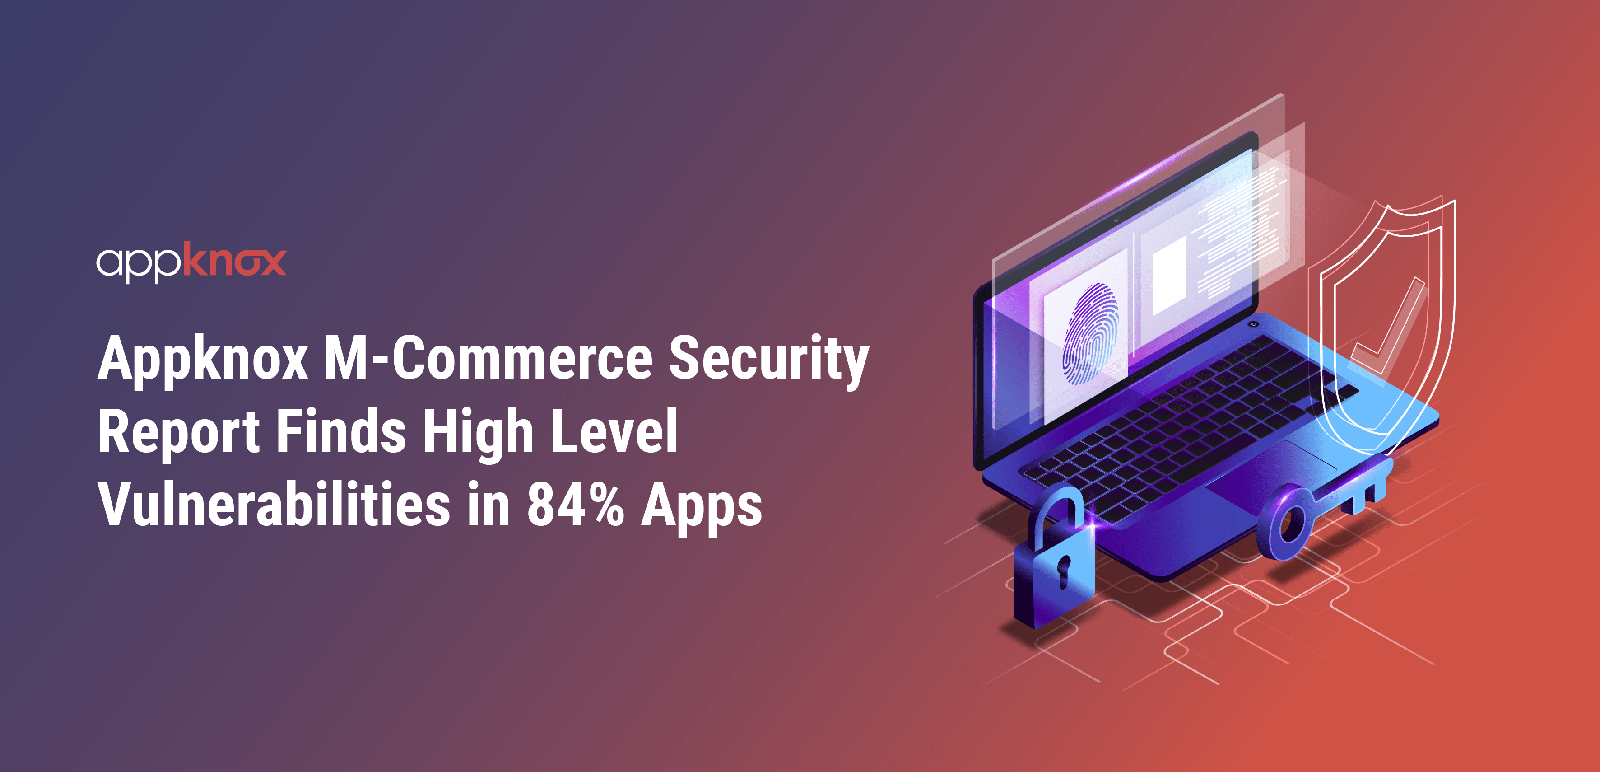 Appknox M-Commerce Security Report Finds High Level Vulnerabilities in 84% Apps